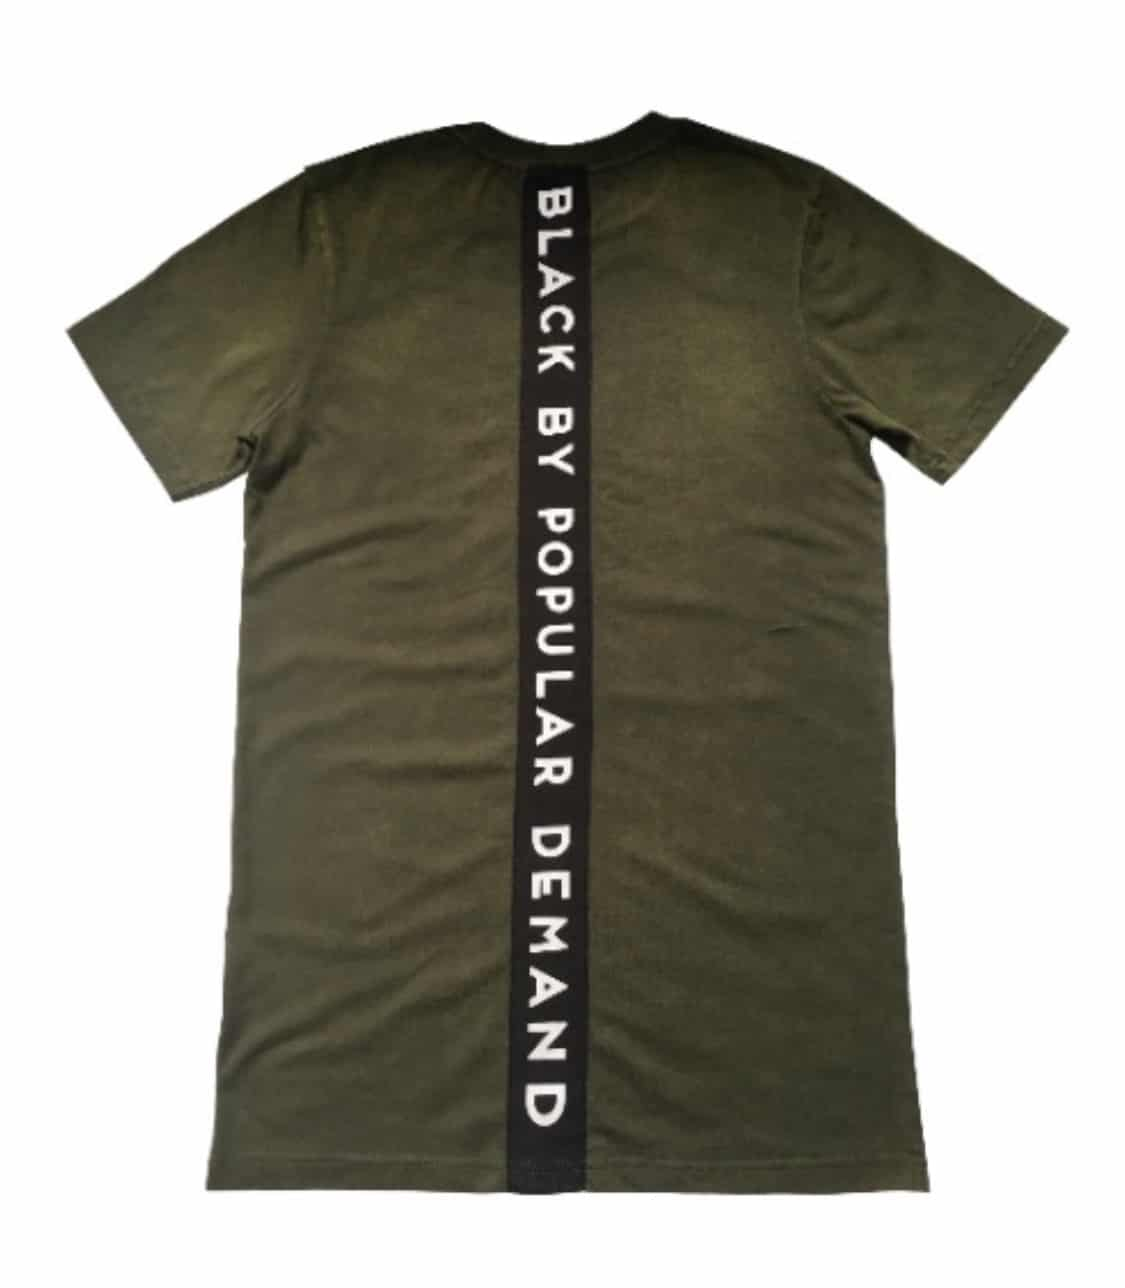 America Is Mad At Black People® Olive Mineral Wash Unisex Shirt HGC Apparel